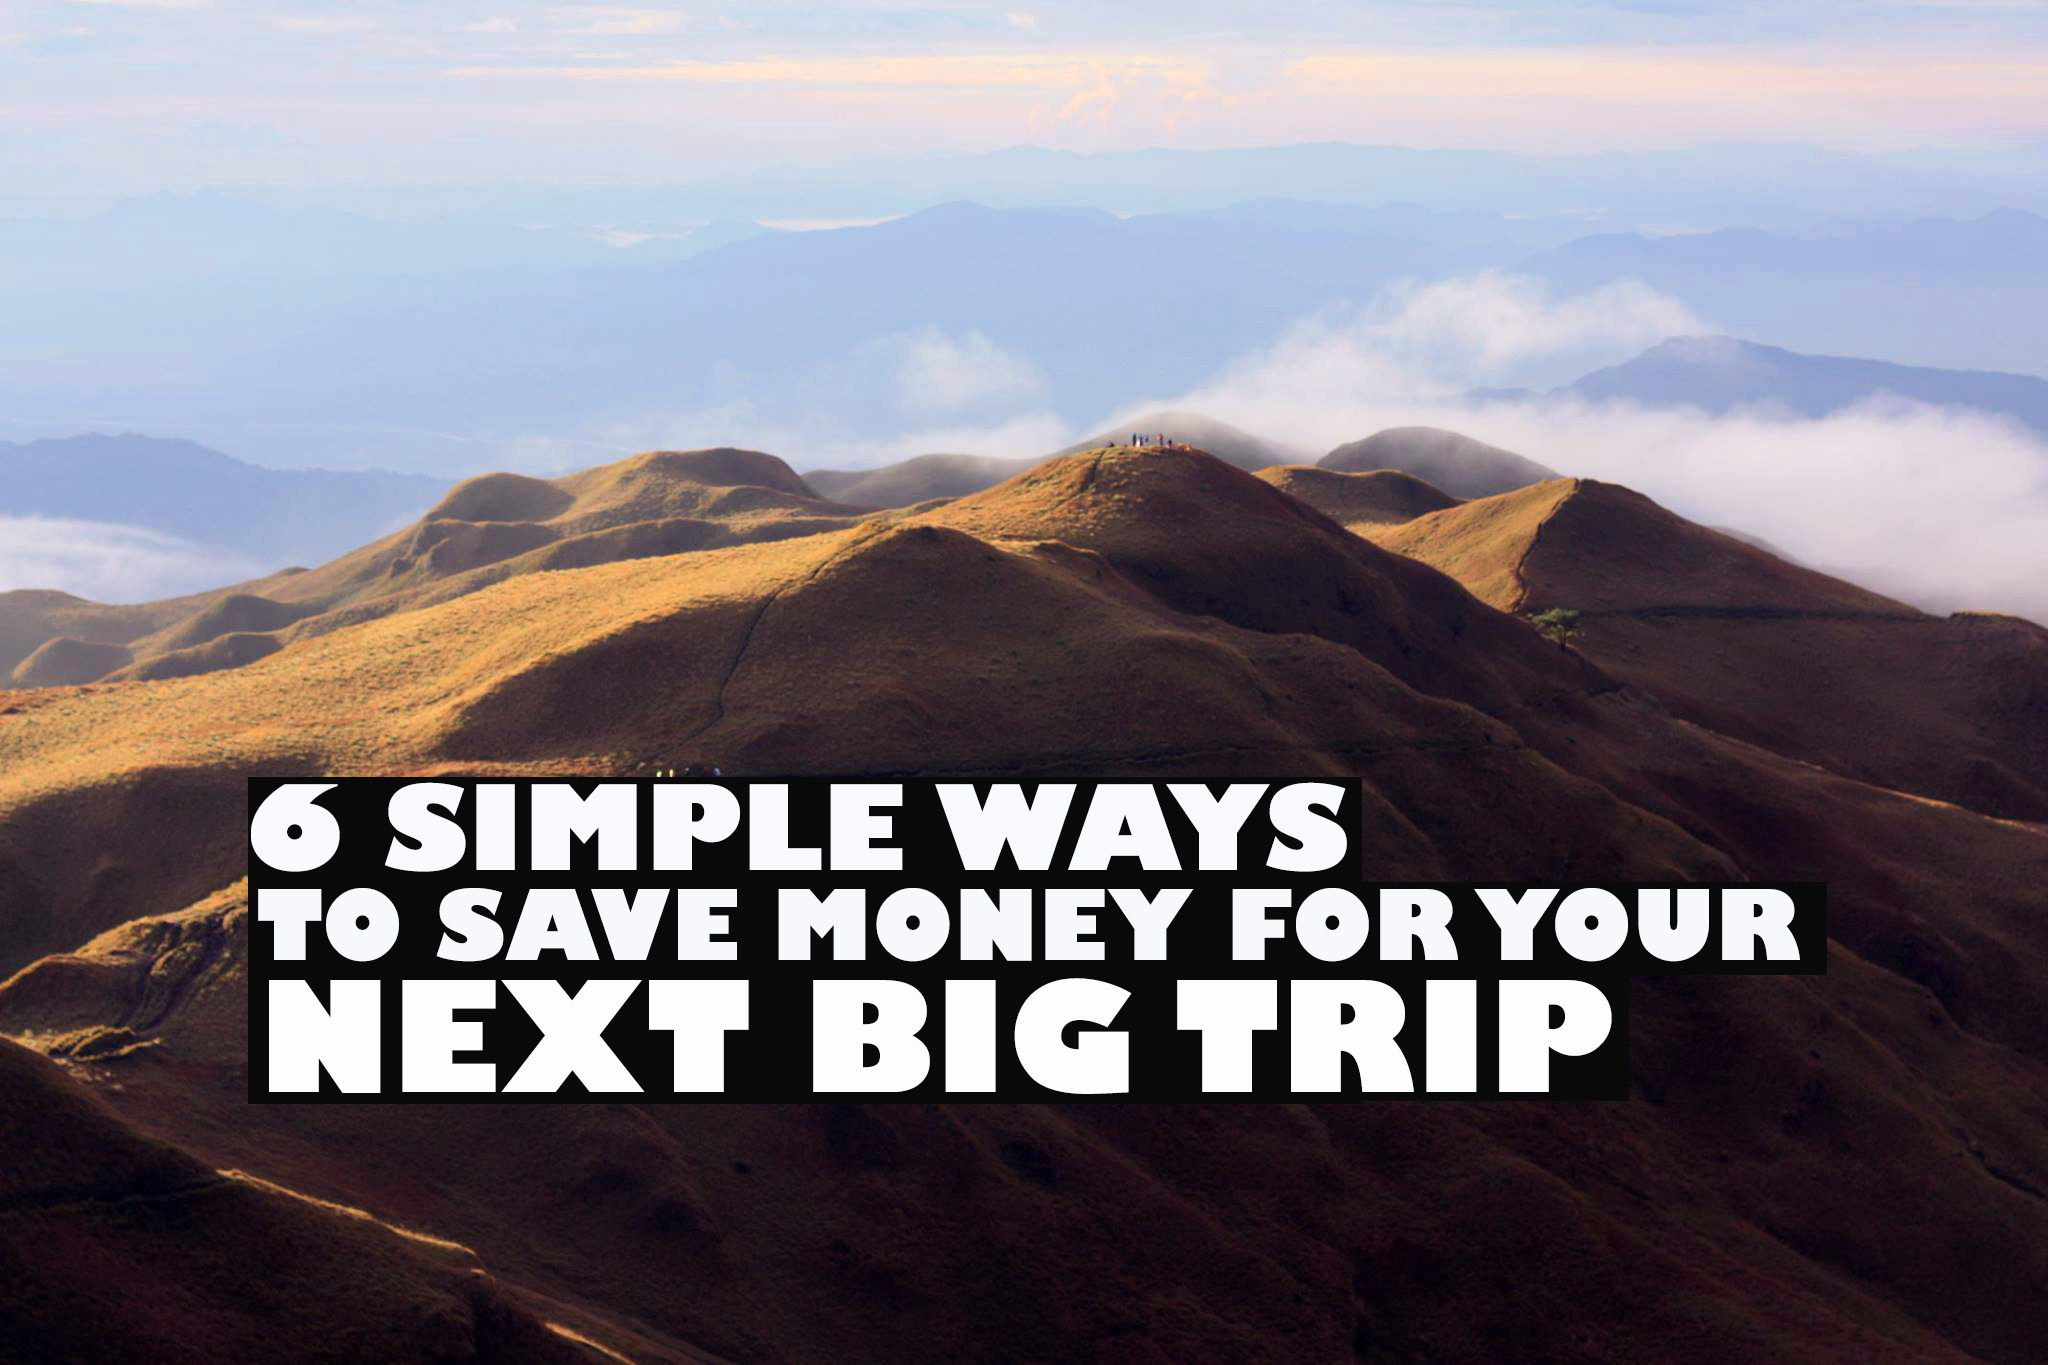 6 SIMPLE WAYS TO SAVE MONEY FOR YOUR NEXT BIG TRIP